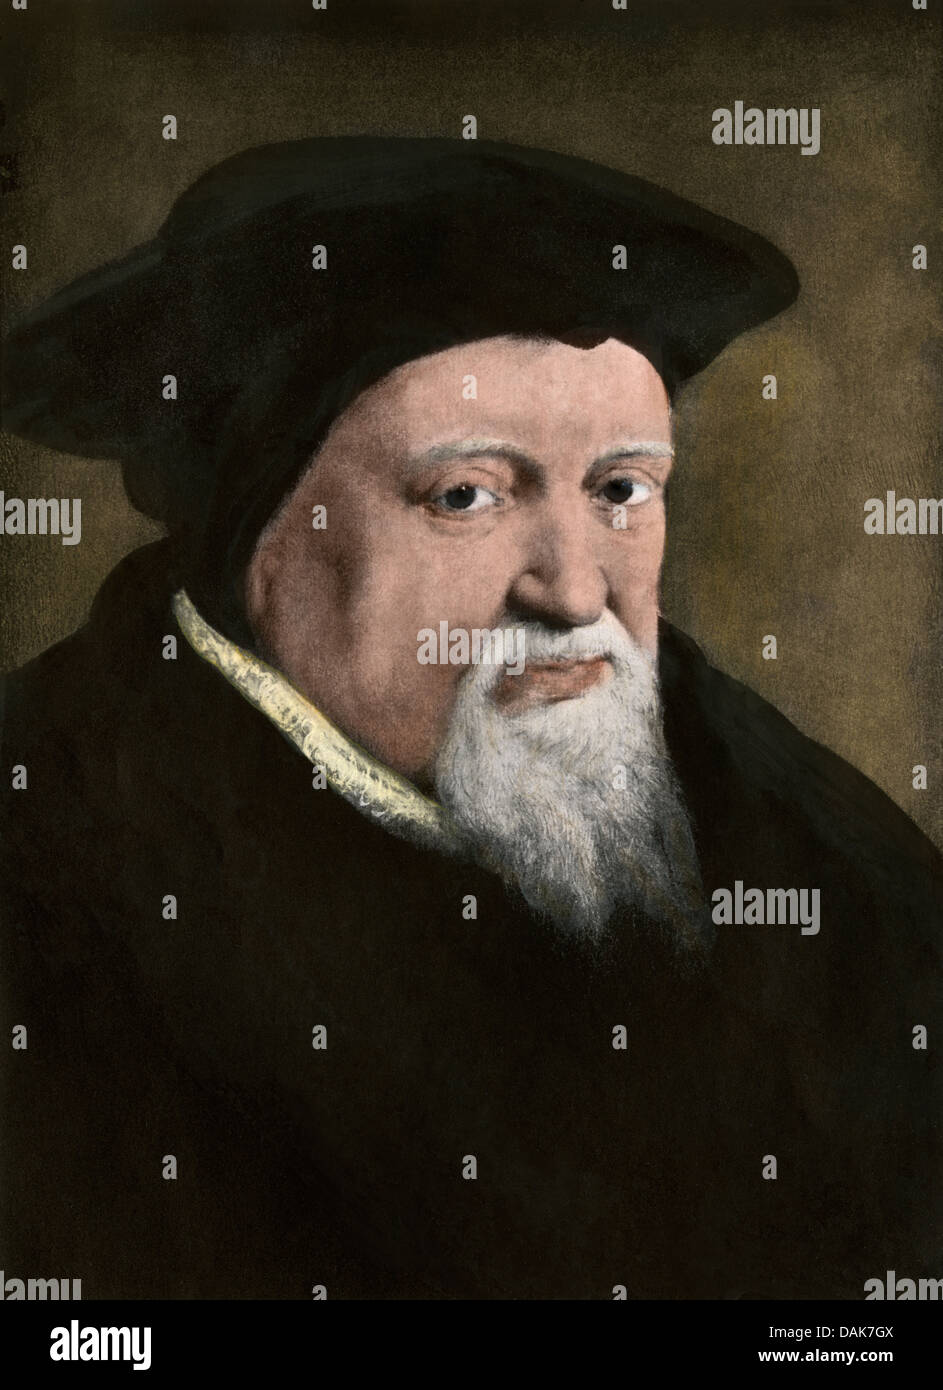 Ulrich Zwingli, Swiss religious reformer. Hand-colored halftone of an illustration - Stock Image